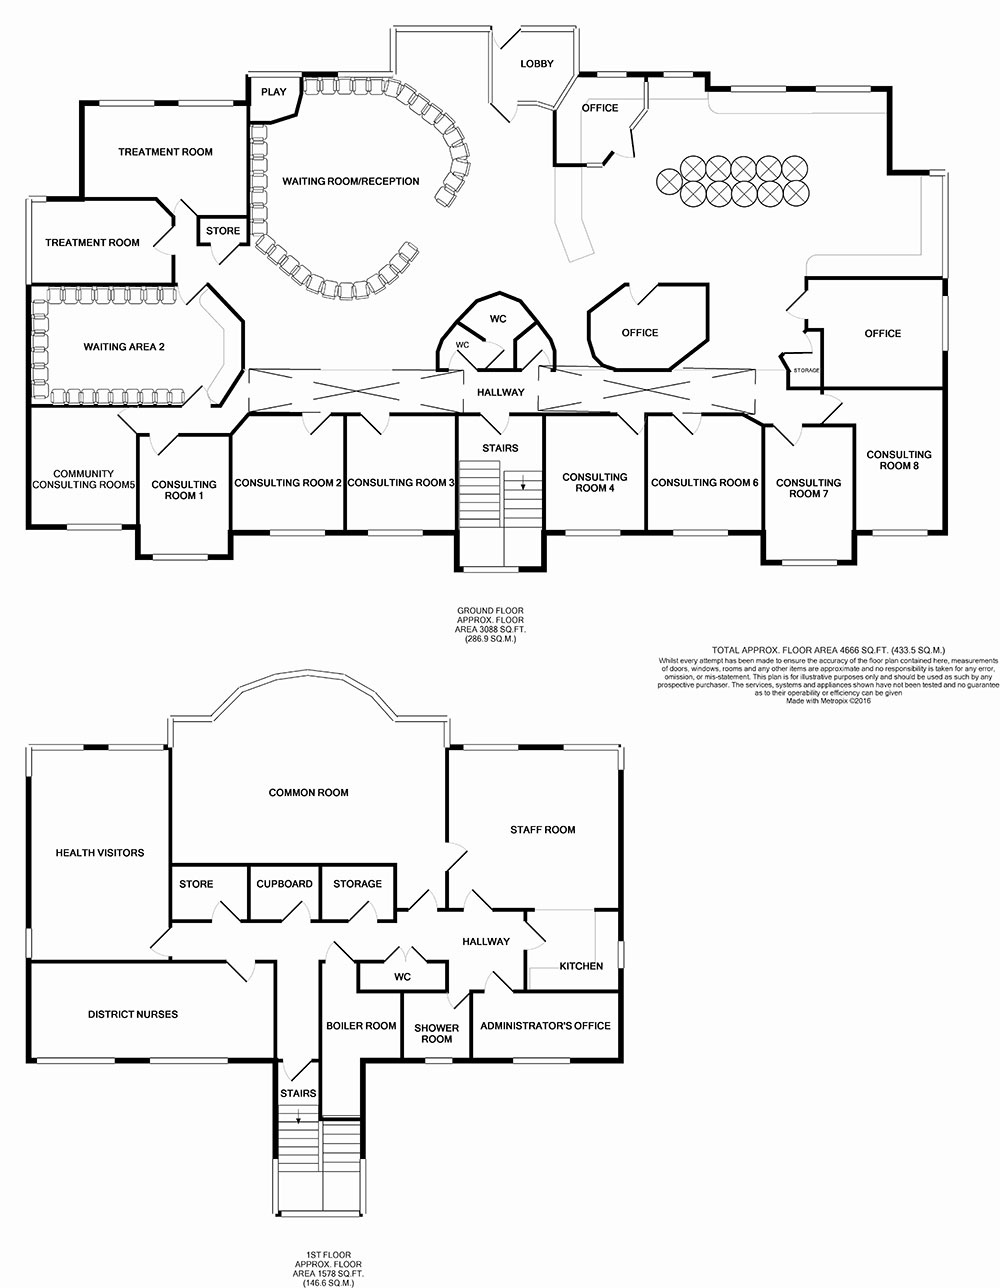 Springwell Medical Centre Floorplan - GP Surveyors